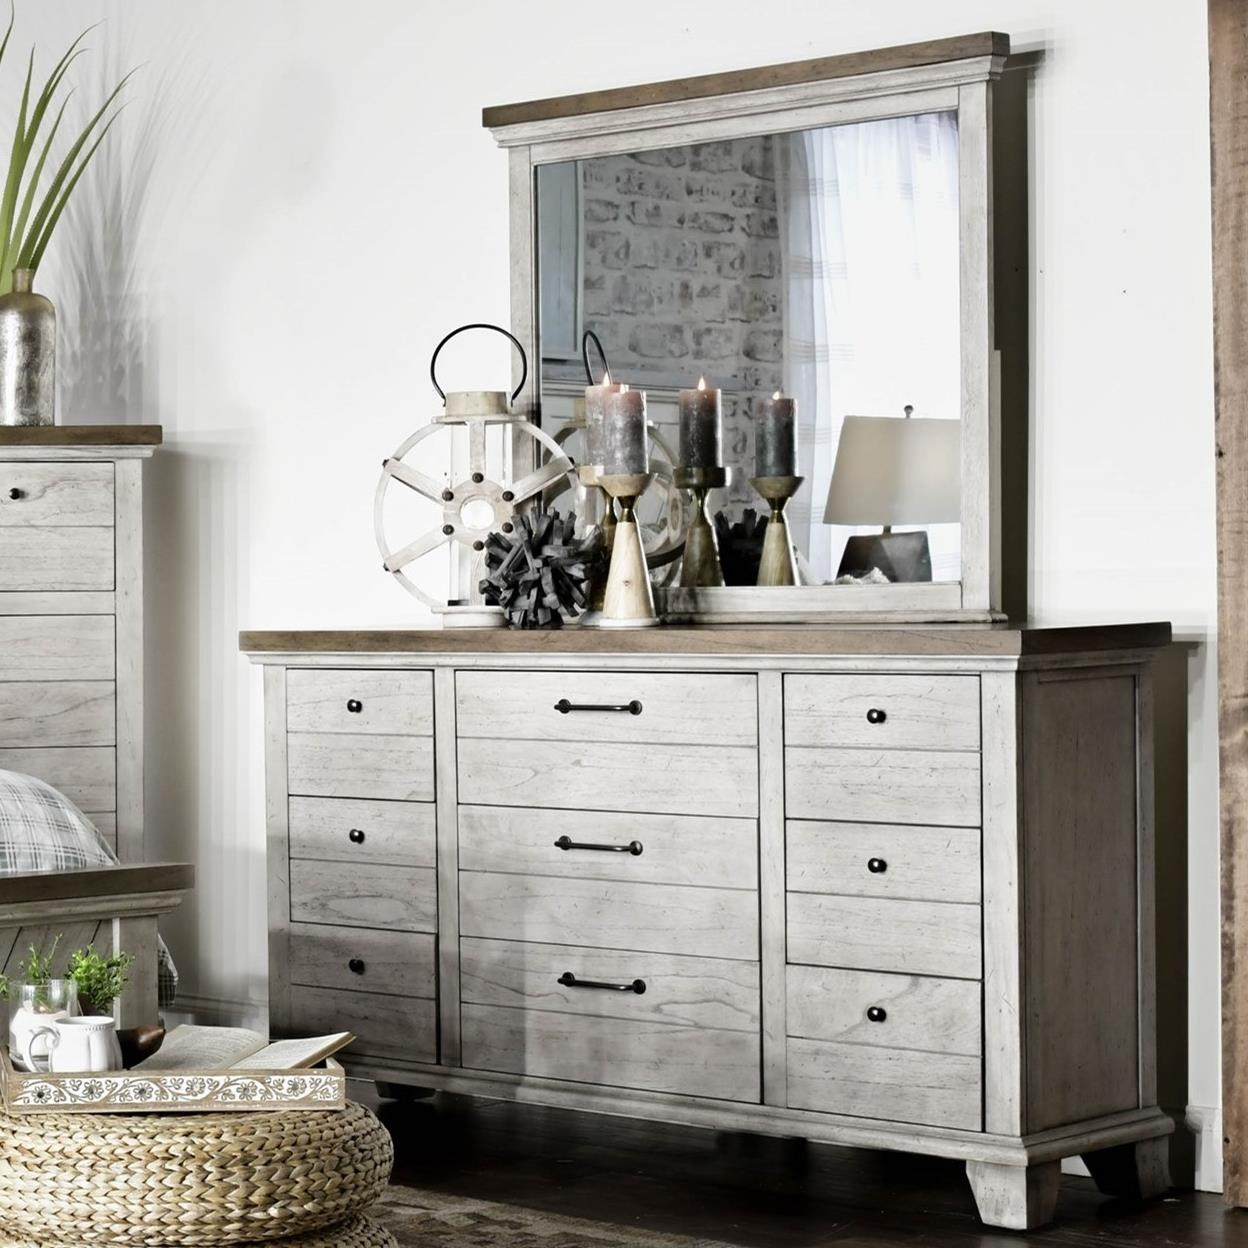 Bear Creek Dresser and Mirror Set by Steve Silver at Northeast Factory Direct